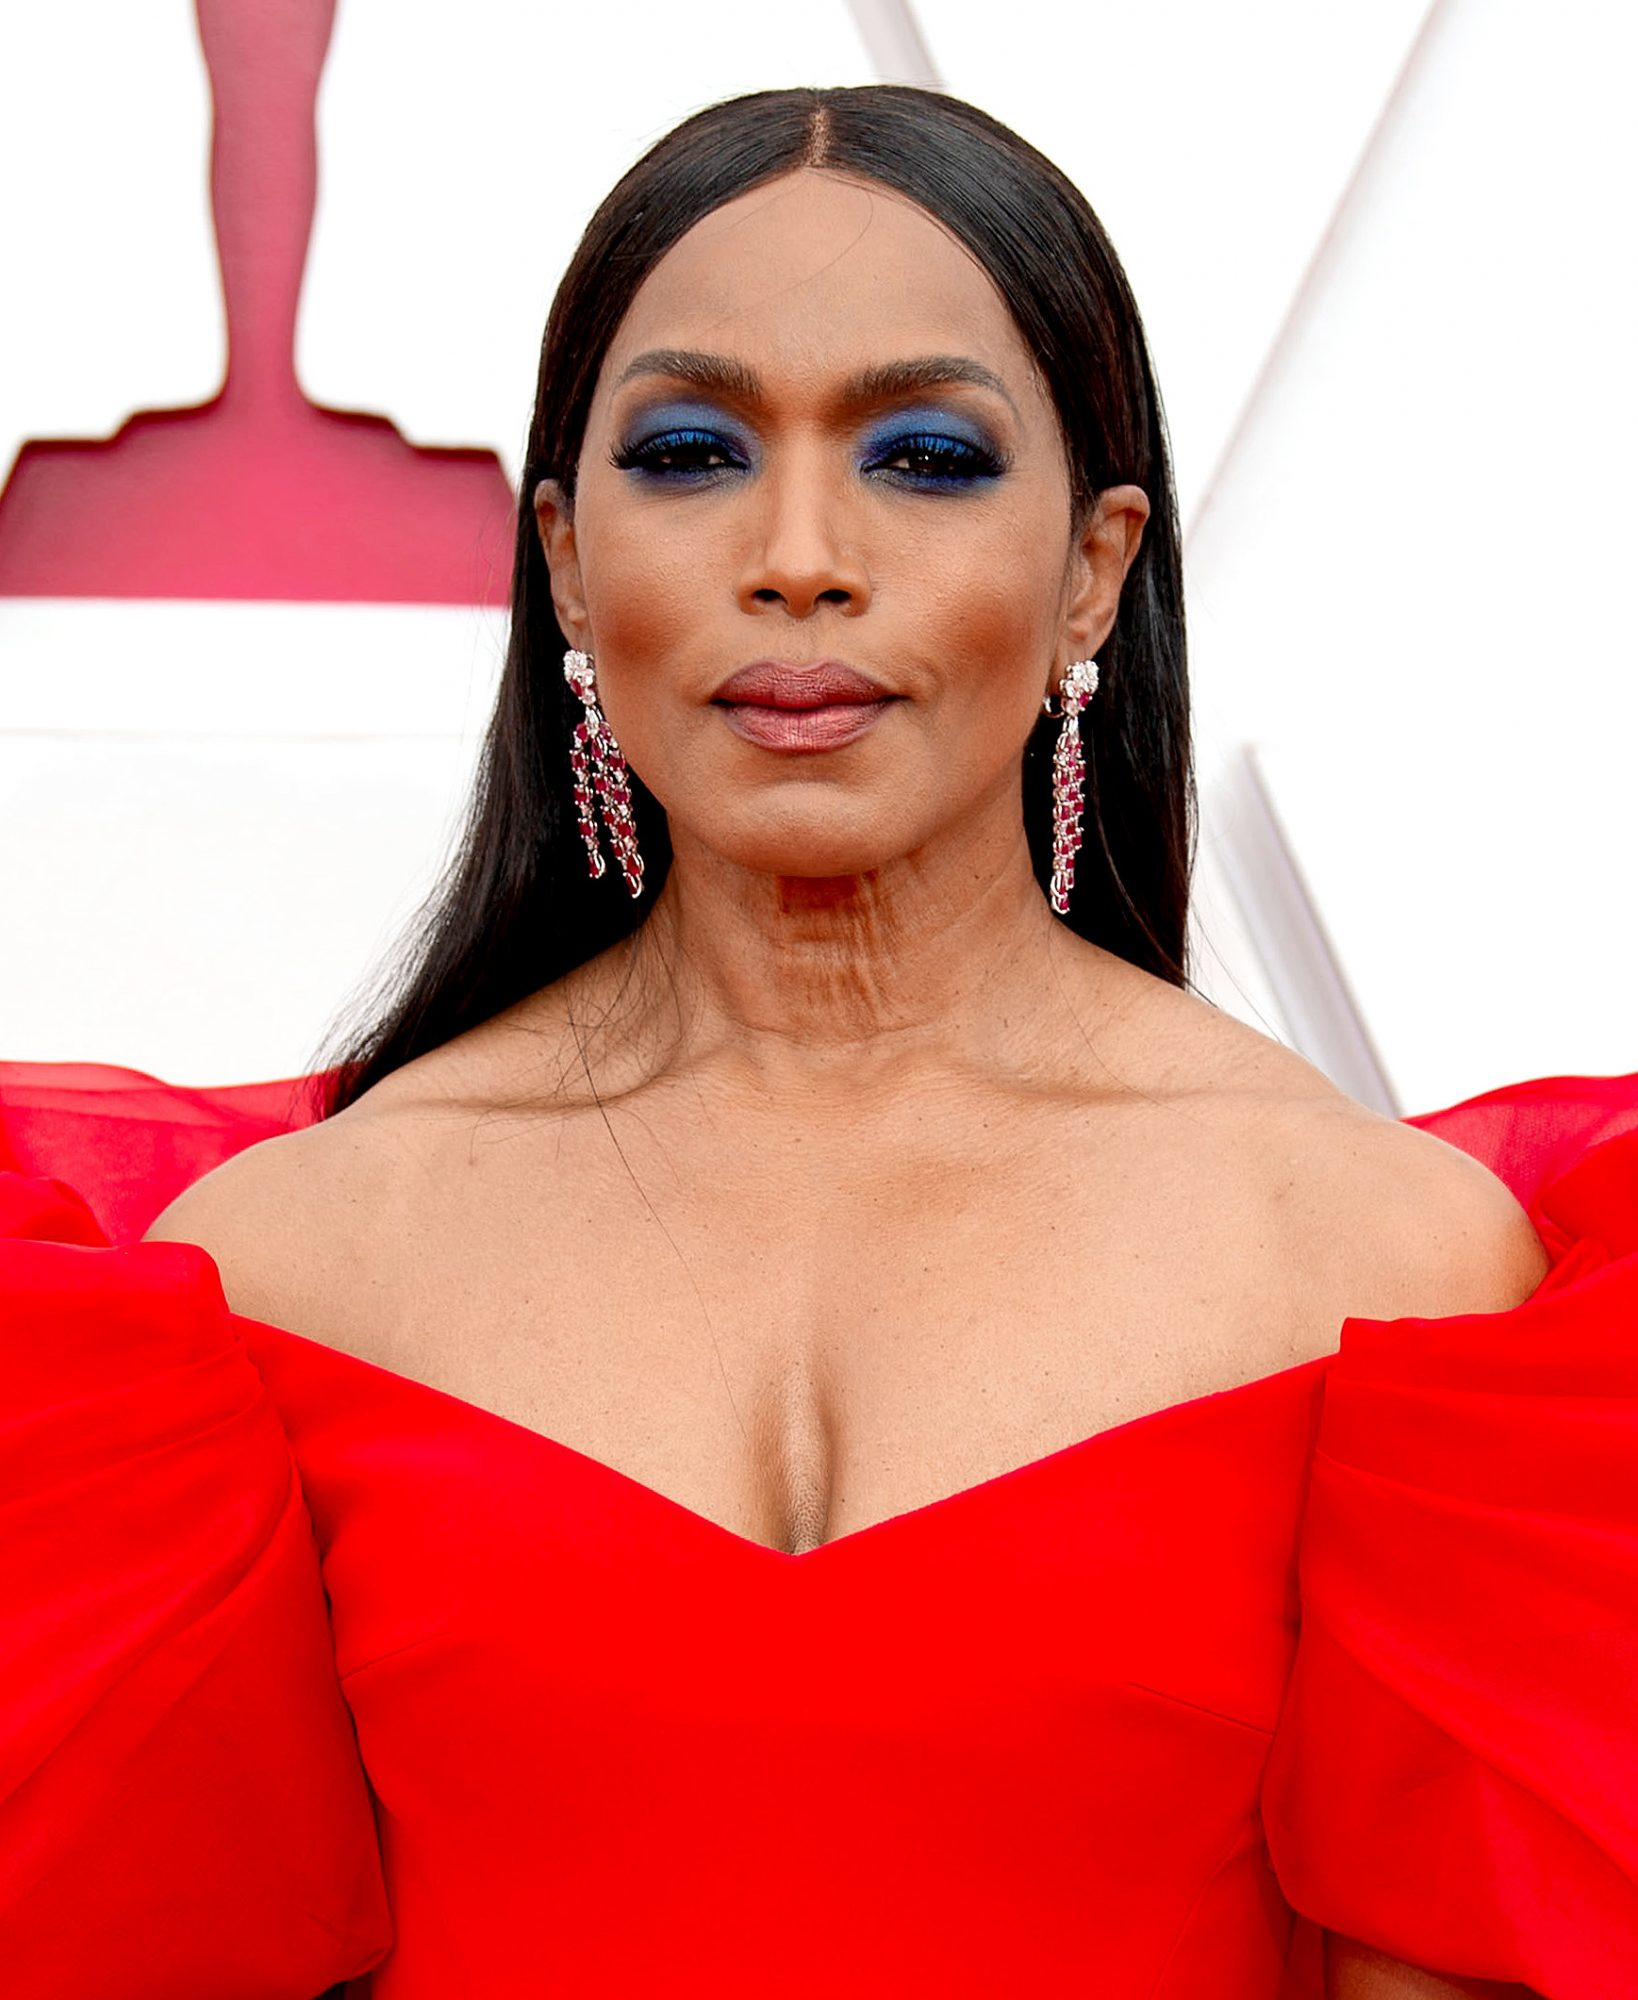 Angela Bassett attends the 78th Annual Golden Globe Awards held at The Beverly Hilton and broadcast on February 28, 2021